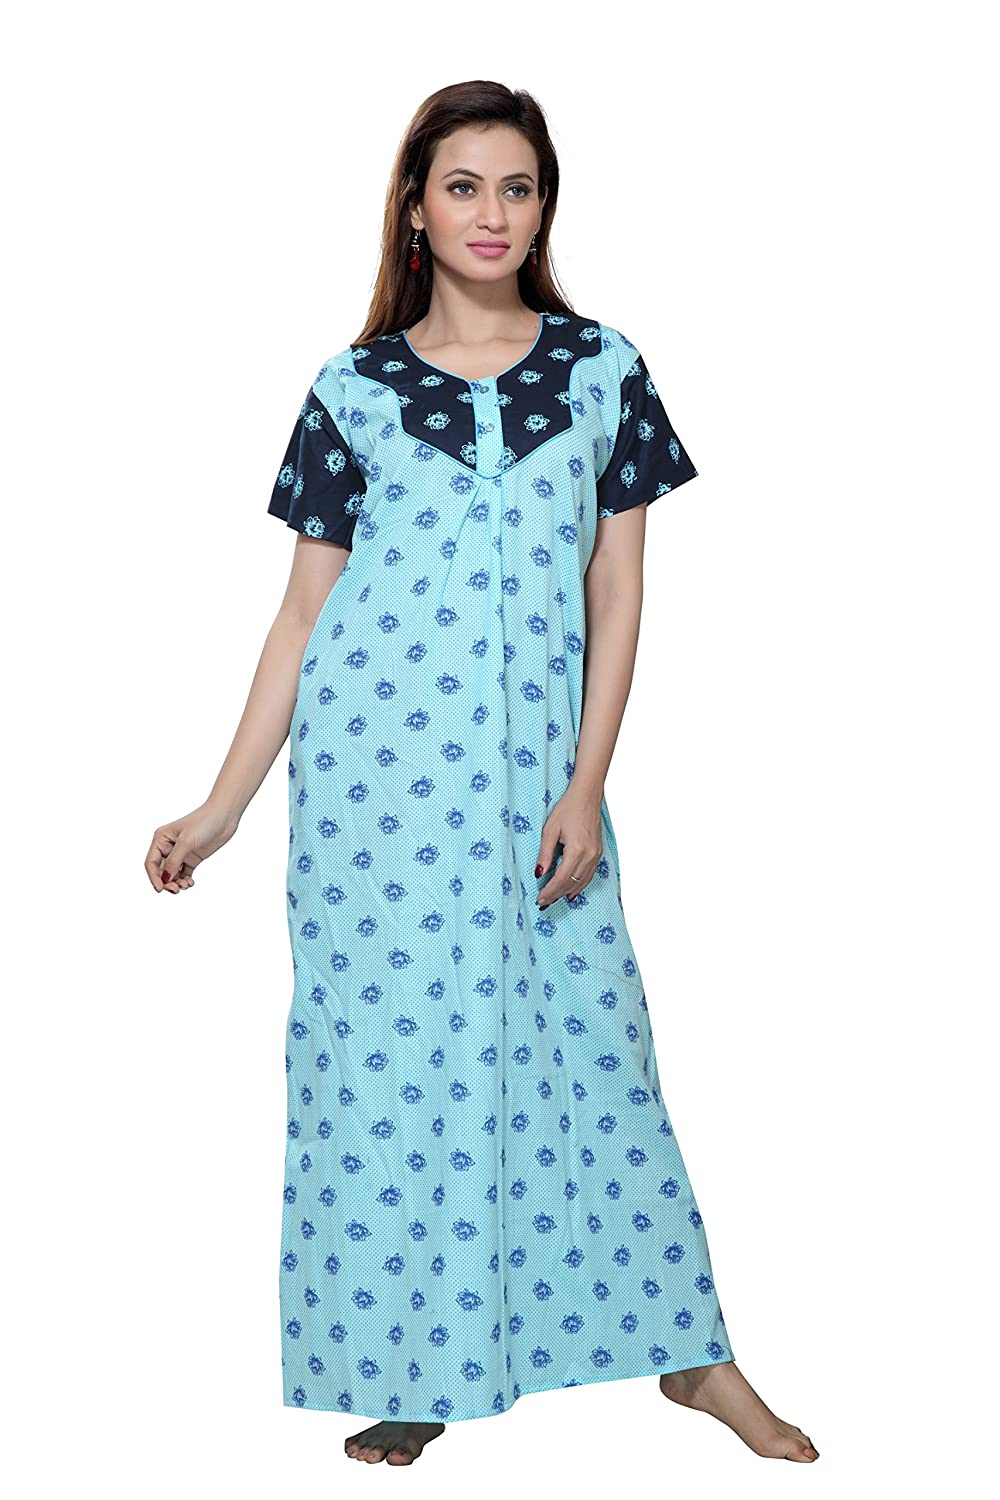 9b39a2cb3c TUCUTE Women Cotton Premium Nighty/Nightwear/Nightdress/Night Gown with  Beautiful Floral Design. (Light Blue 1614): Amazon.in: Clothing &  Accessories